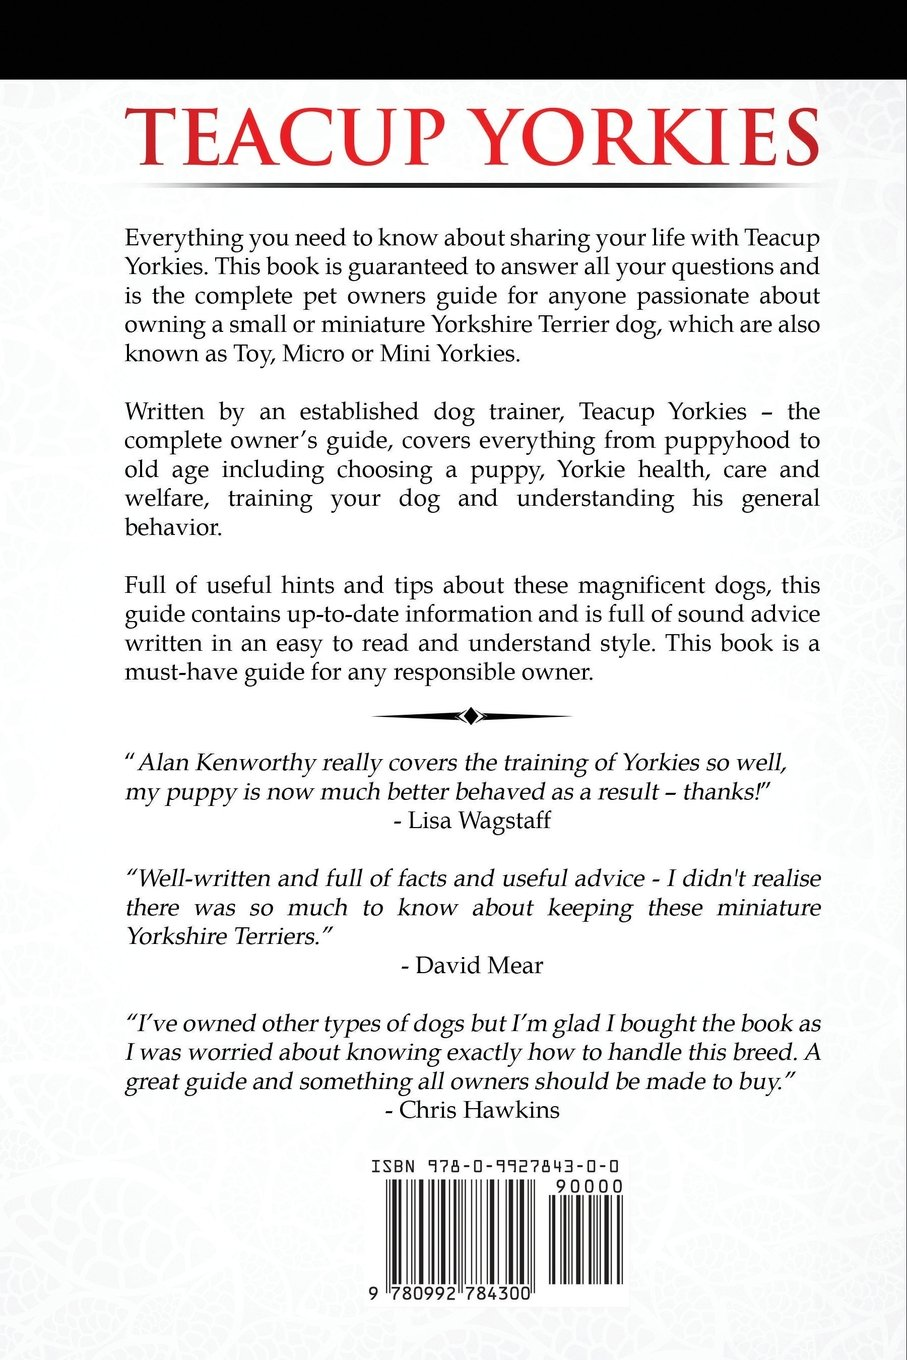 Teacup yorkies the complete owners guide choosing caring for teacup yorkies the complete owners guide choosing caring for and training your miniature yorkshire terrier micro toy or mini yorkie nvjuhfo Images